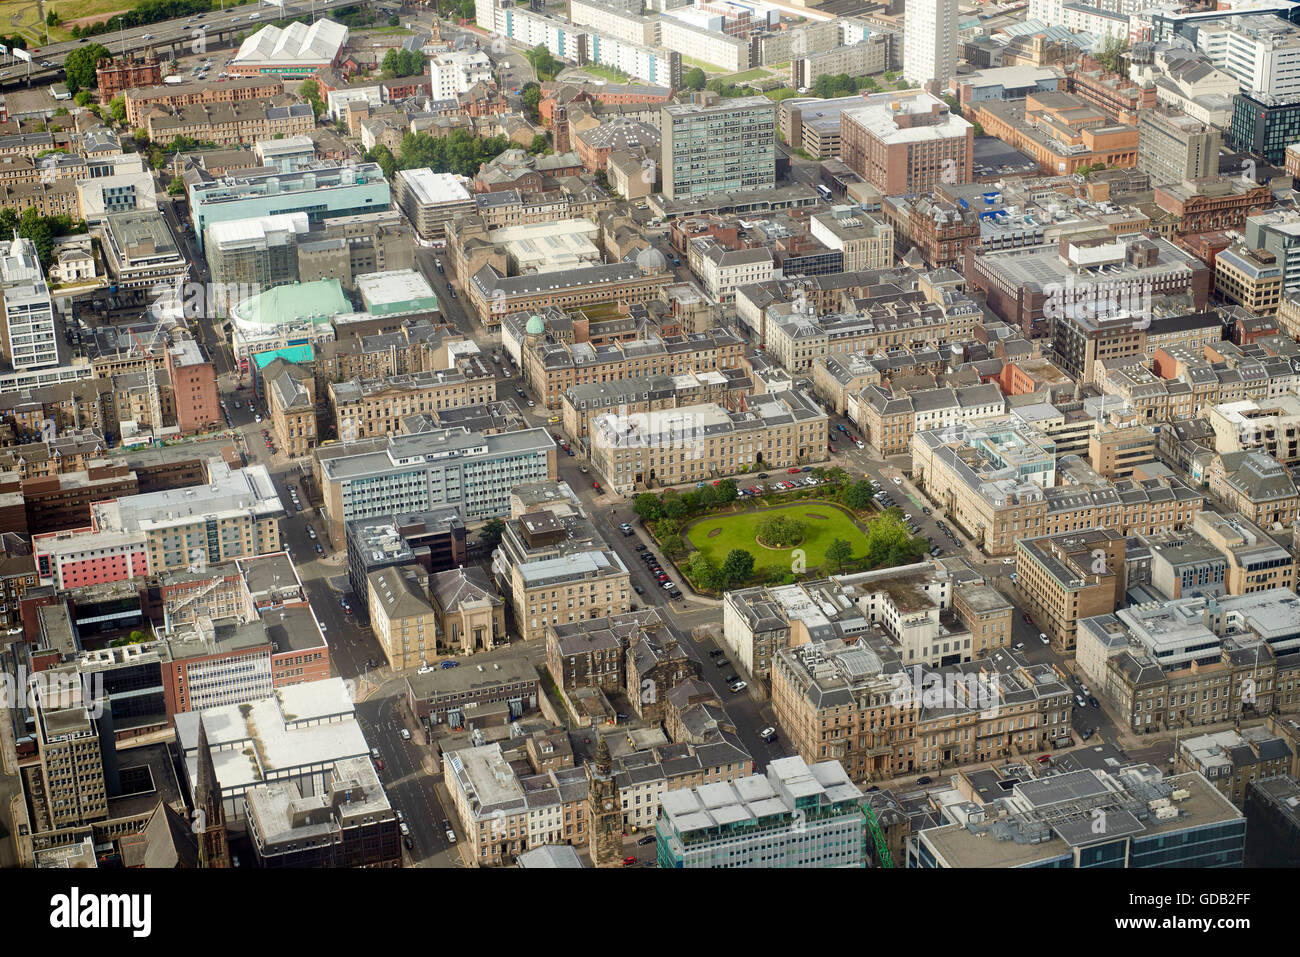 An aerial view of Glasgow business district, Central Scotland - Stock Image